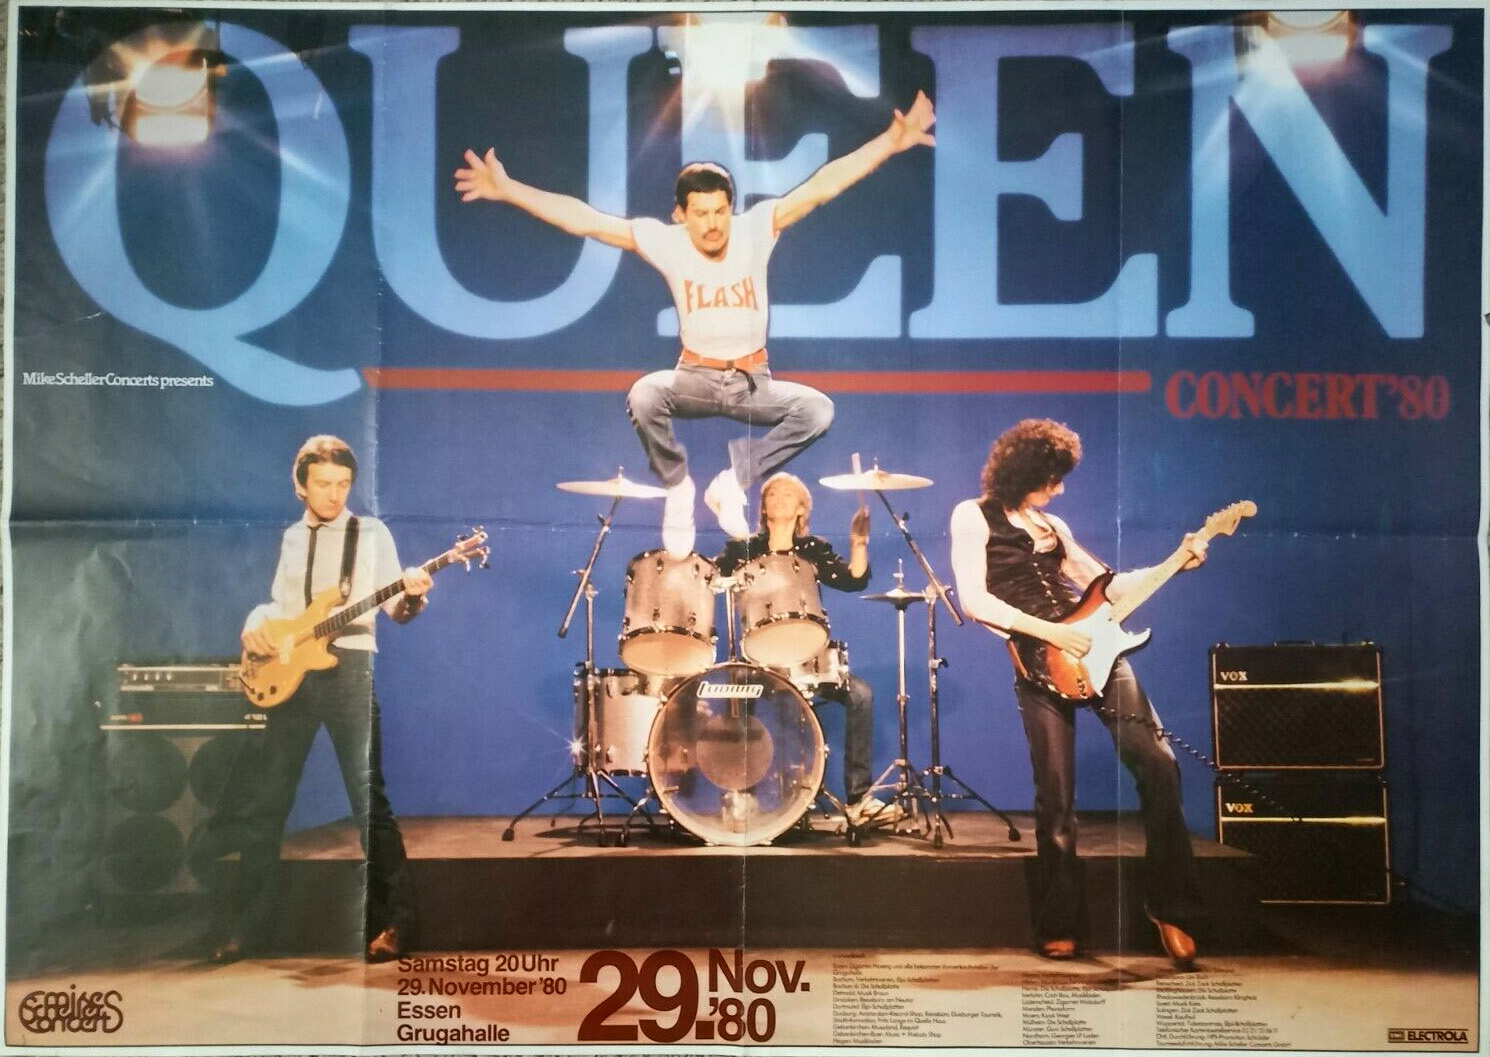 Queen in Essen on 29.11.1980